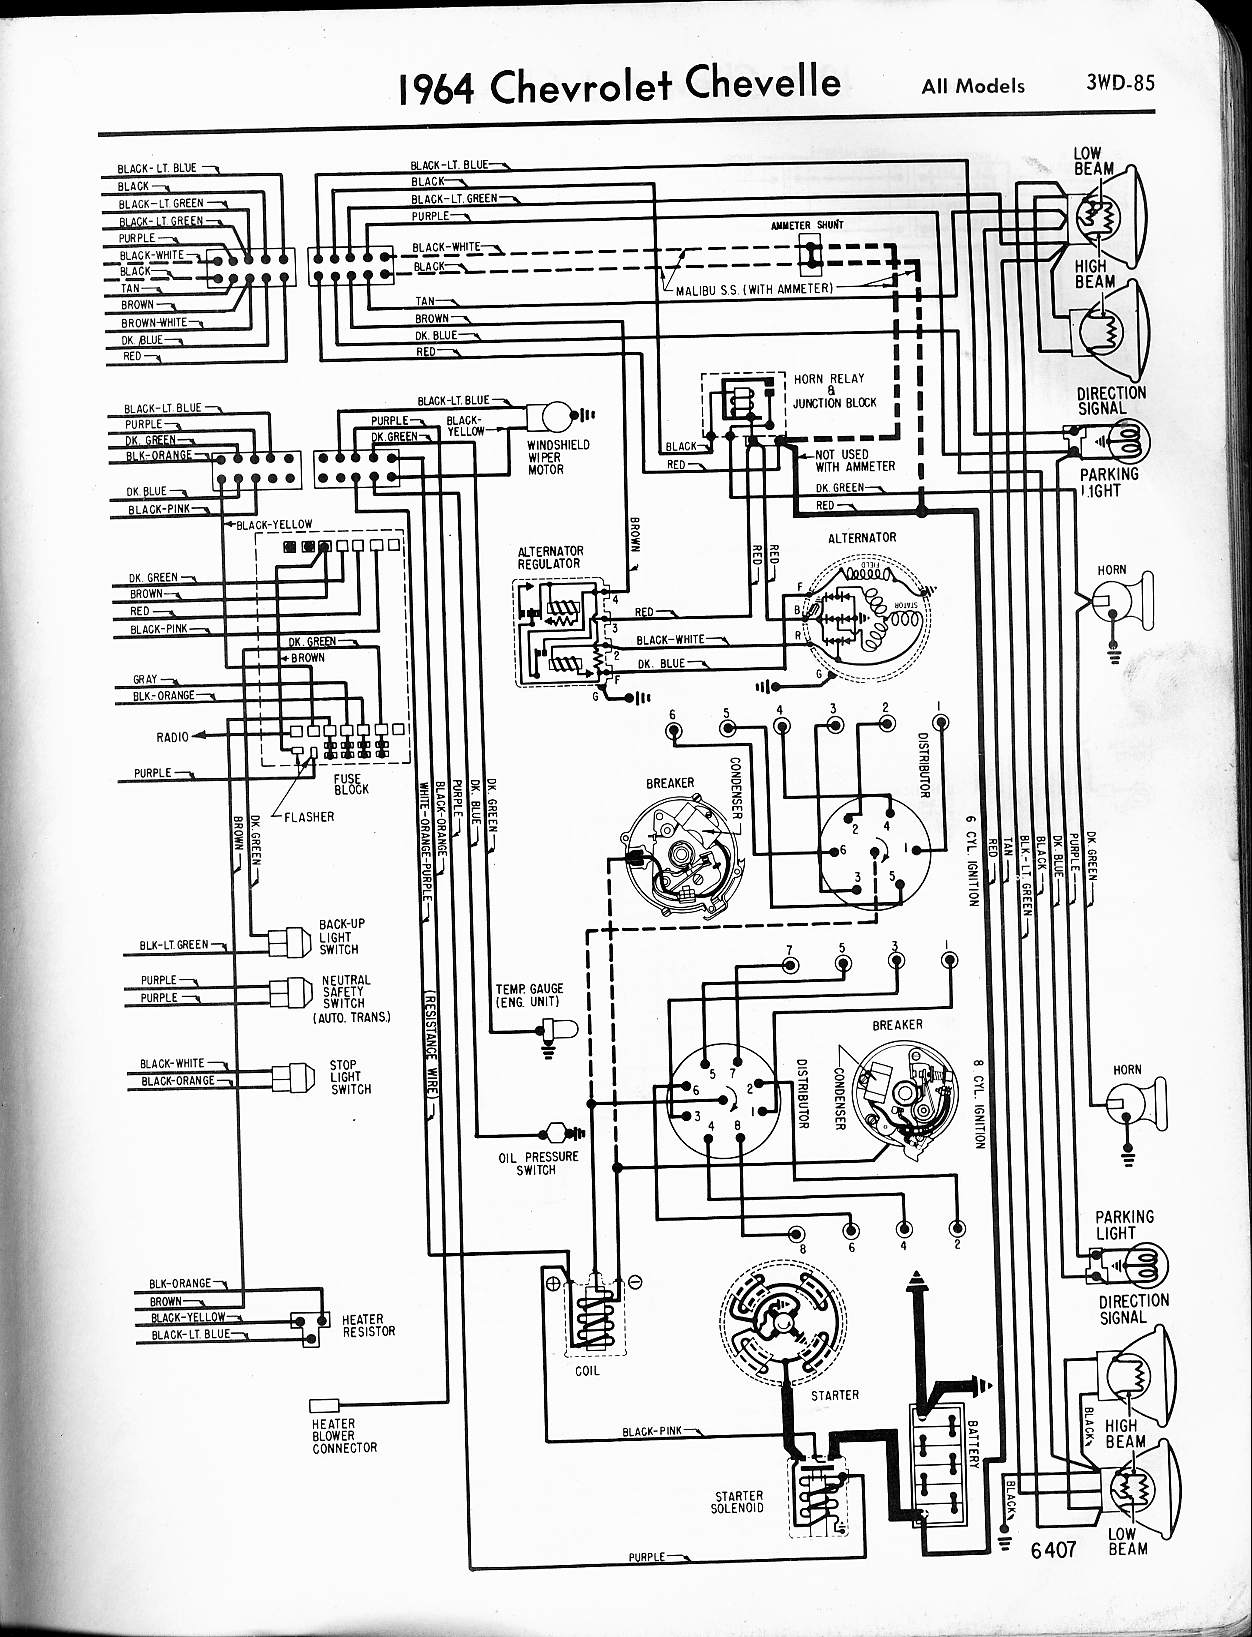 MWireChev64_3WD 085 57 65 chevy wiring diagrams 1964 falcon wiring diagram at aneh.co